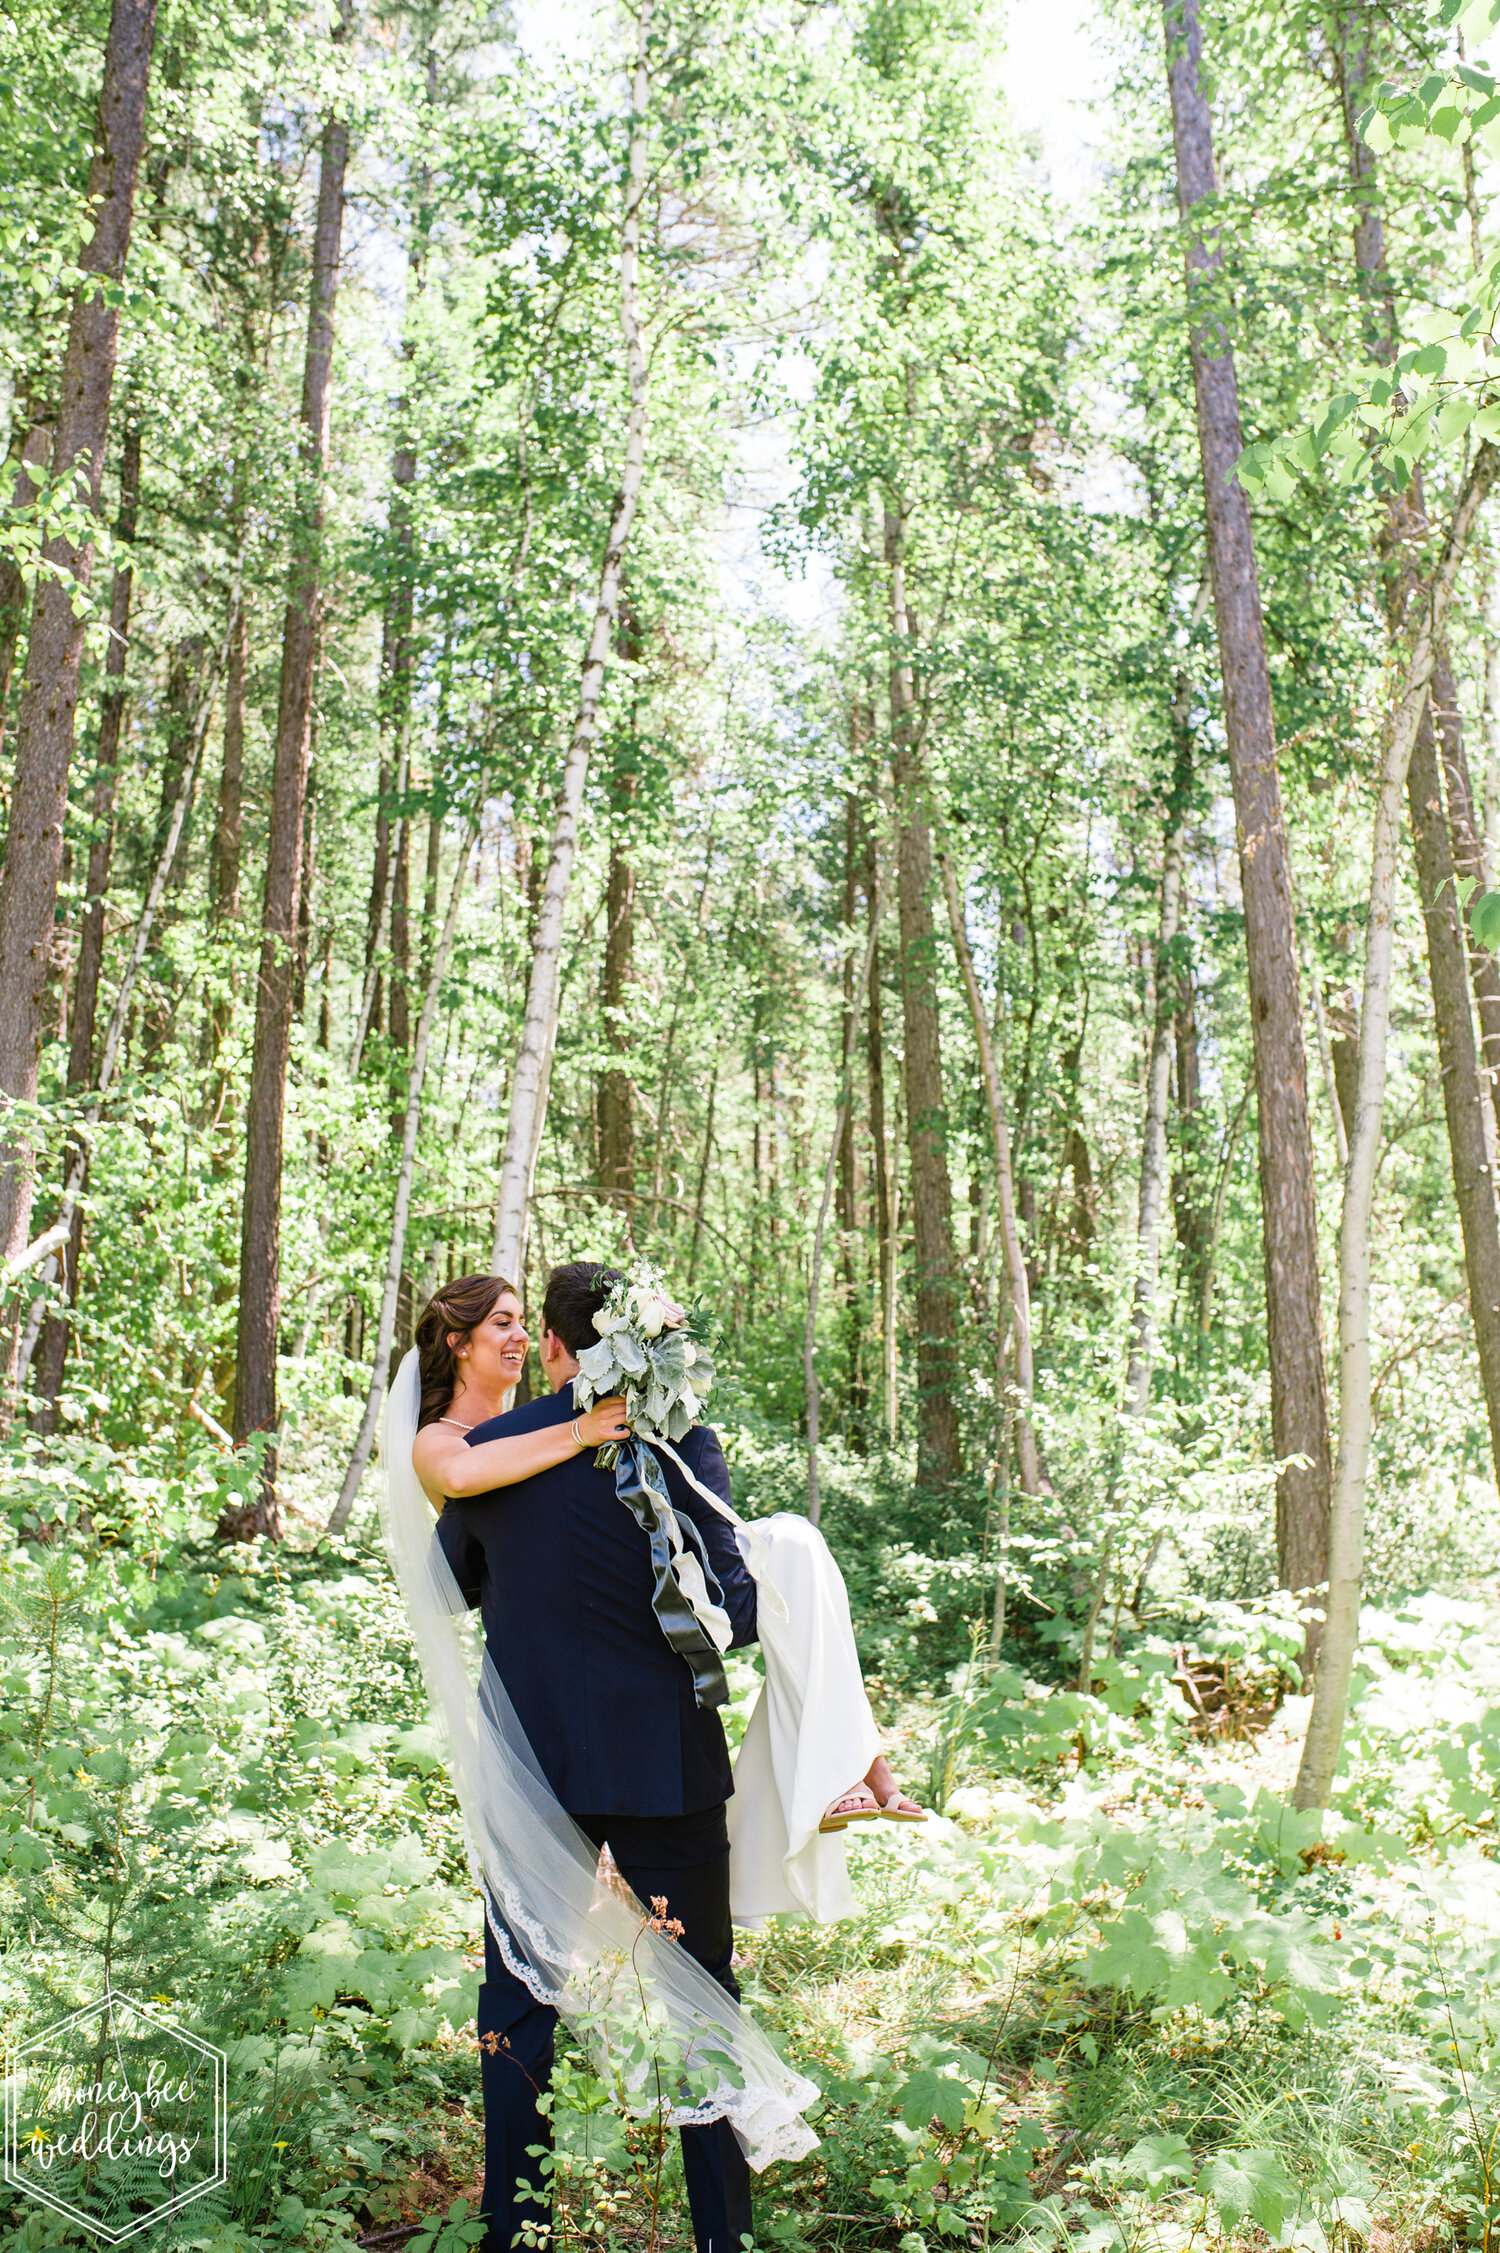 033Glacier National Park Wedding_Glacier Outdoor Center_Honeybee Weddings_Anna & Seth_July 21, 2019-1806.jpg